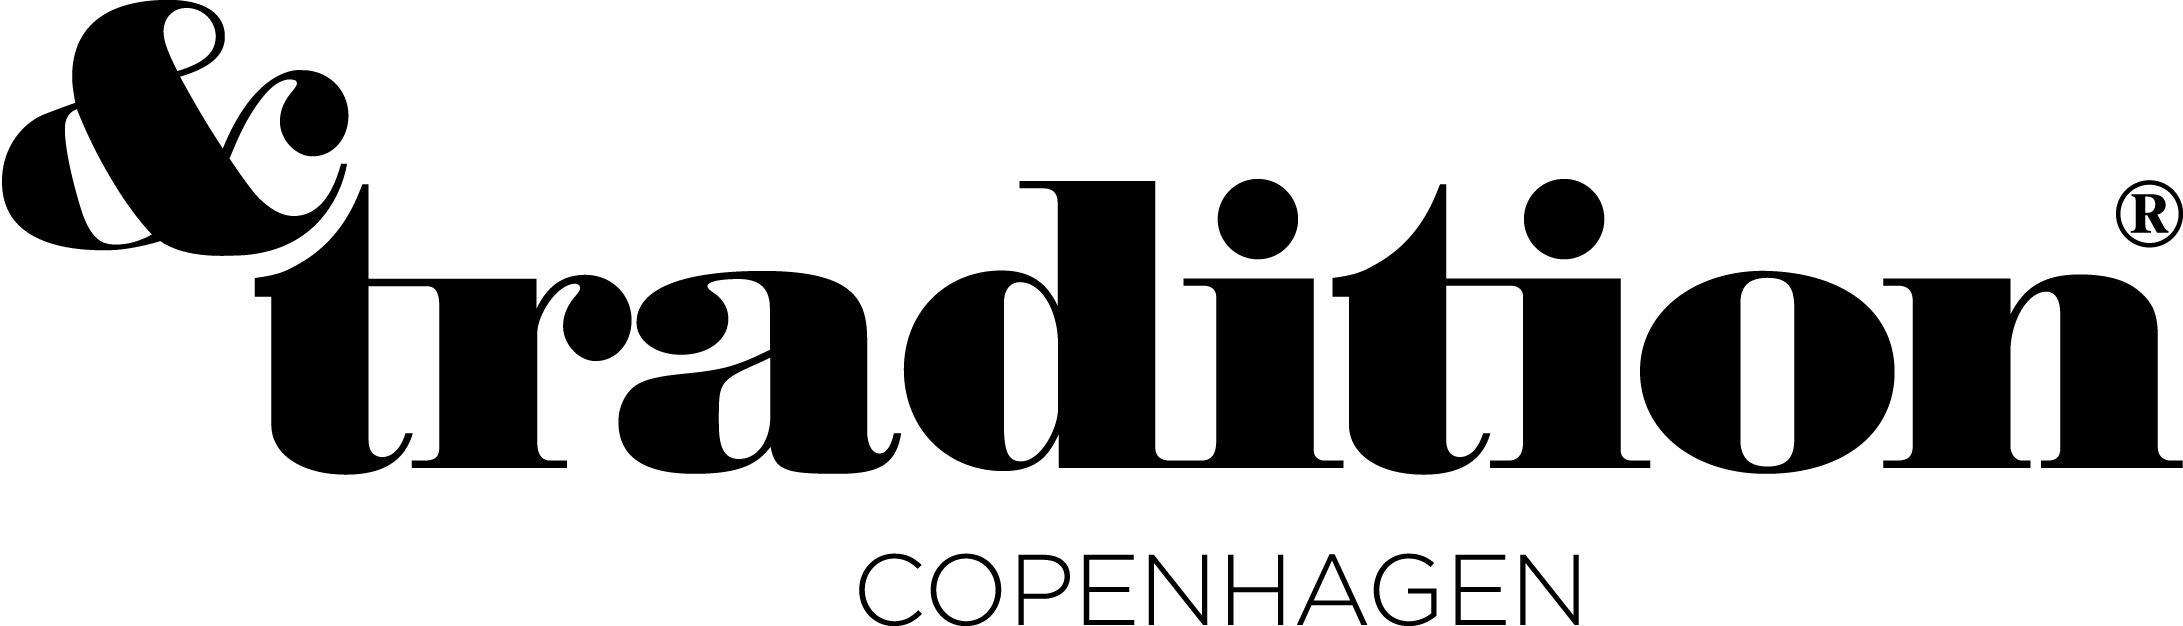 andtradition-copenhagen-logo-black.jpg